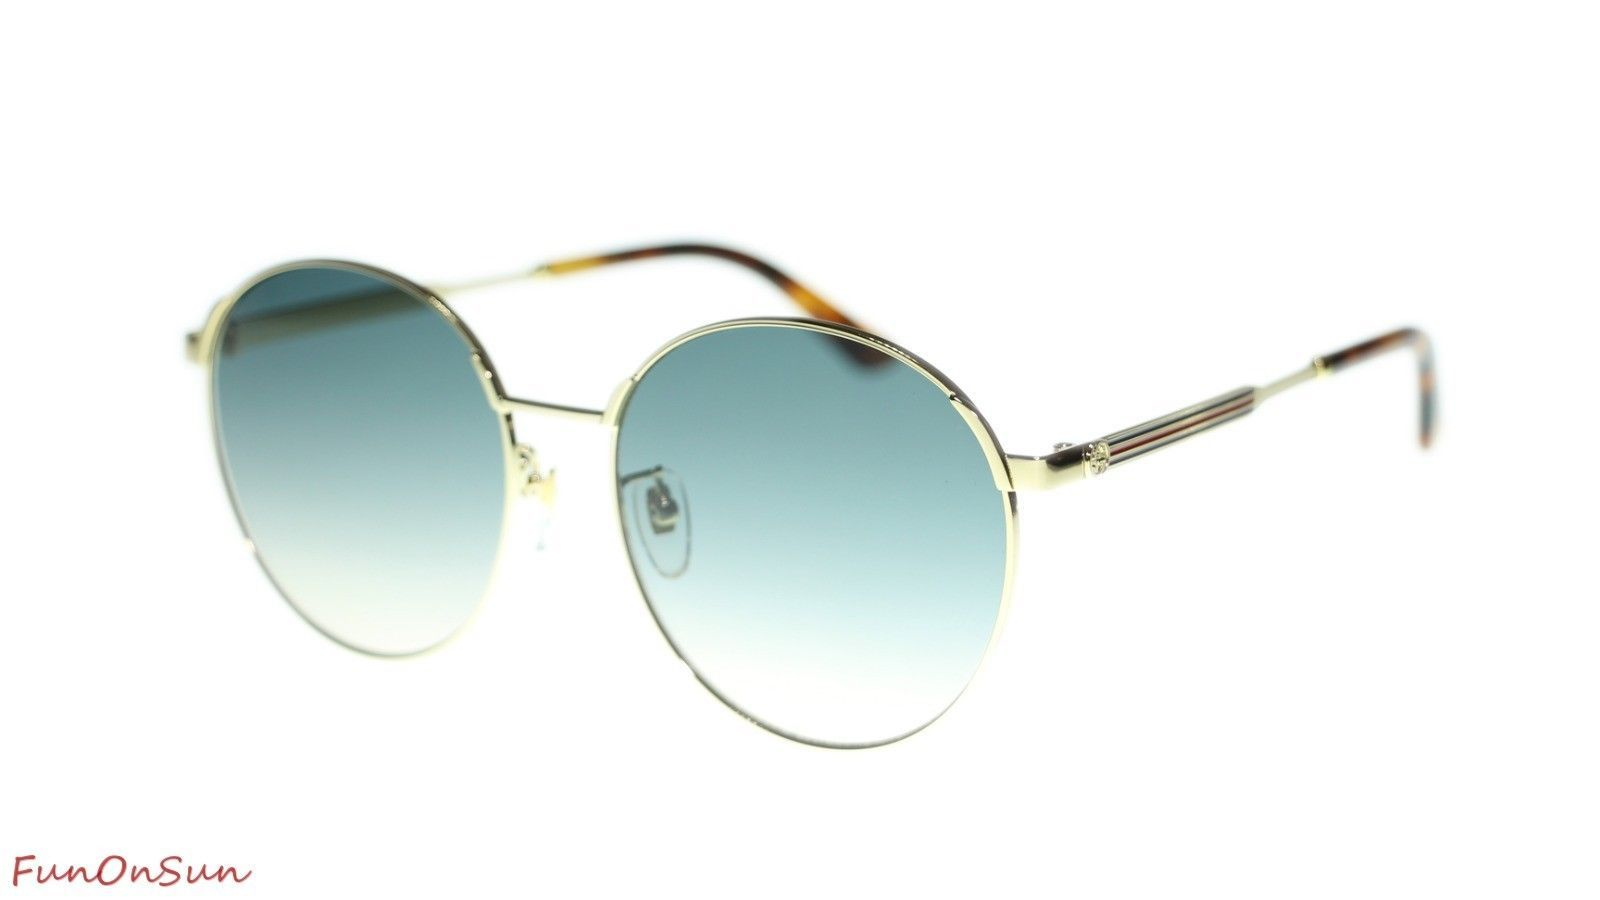 6a128c3b138 Gucci Women s Sunglasses GG0206SK 005 and 17 similar items